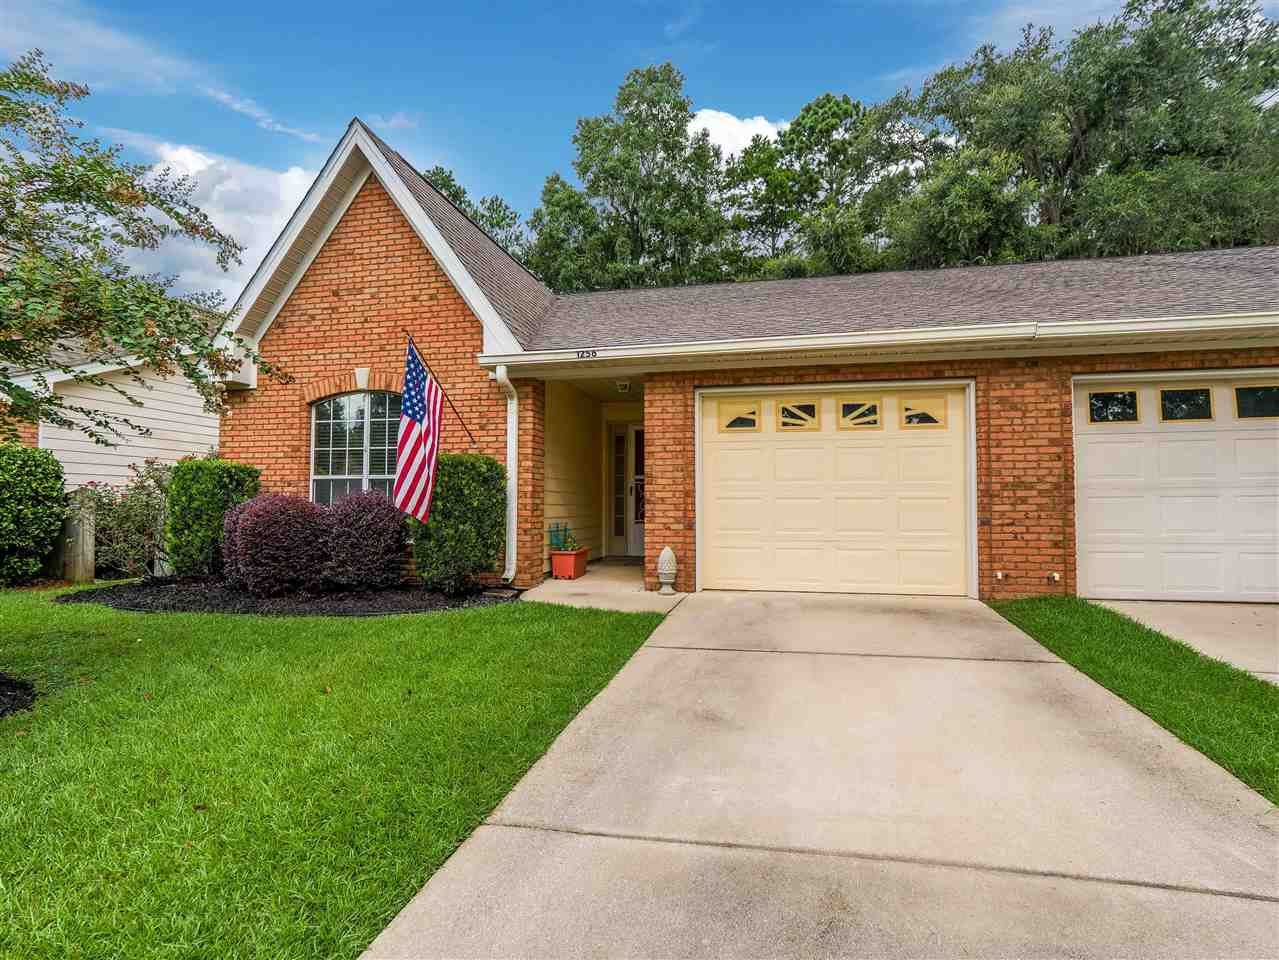 Photo of 1256 Mosswood Chase, TALLAHASSEE, FL 32312 (MLS # 321794)